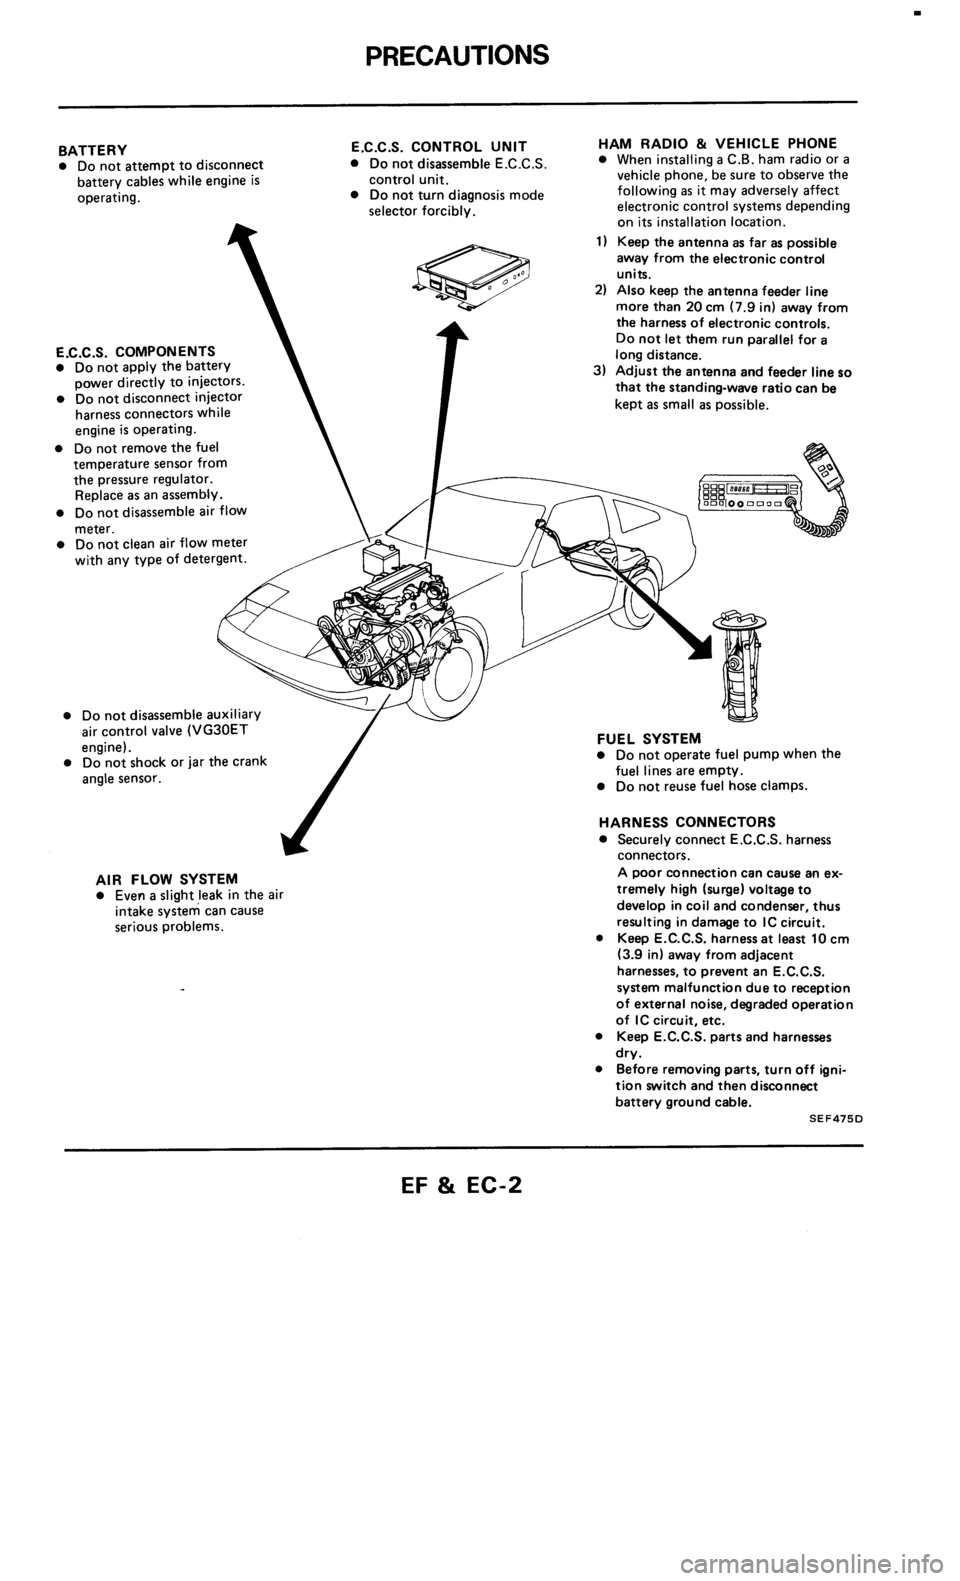 NISSAN 300ZX 1986 Z31 Engine Fuel And Emission Control